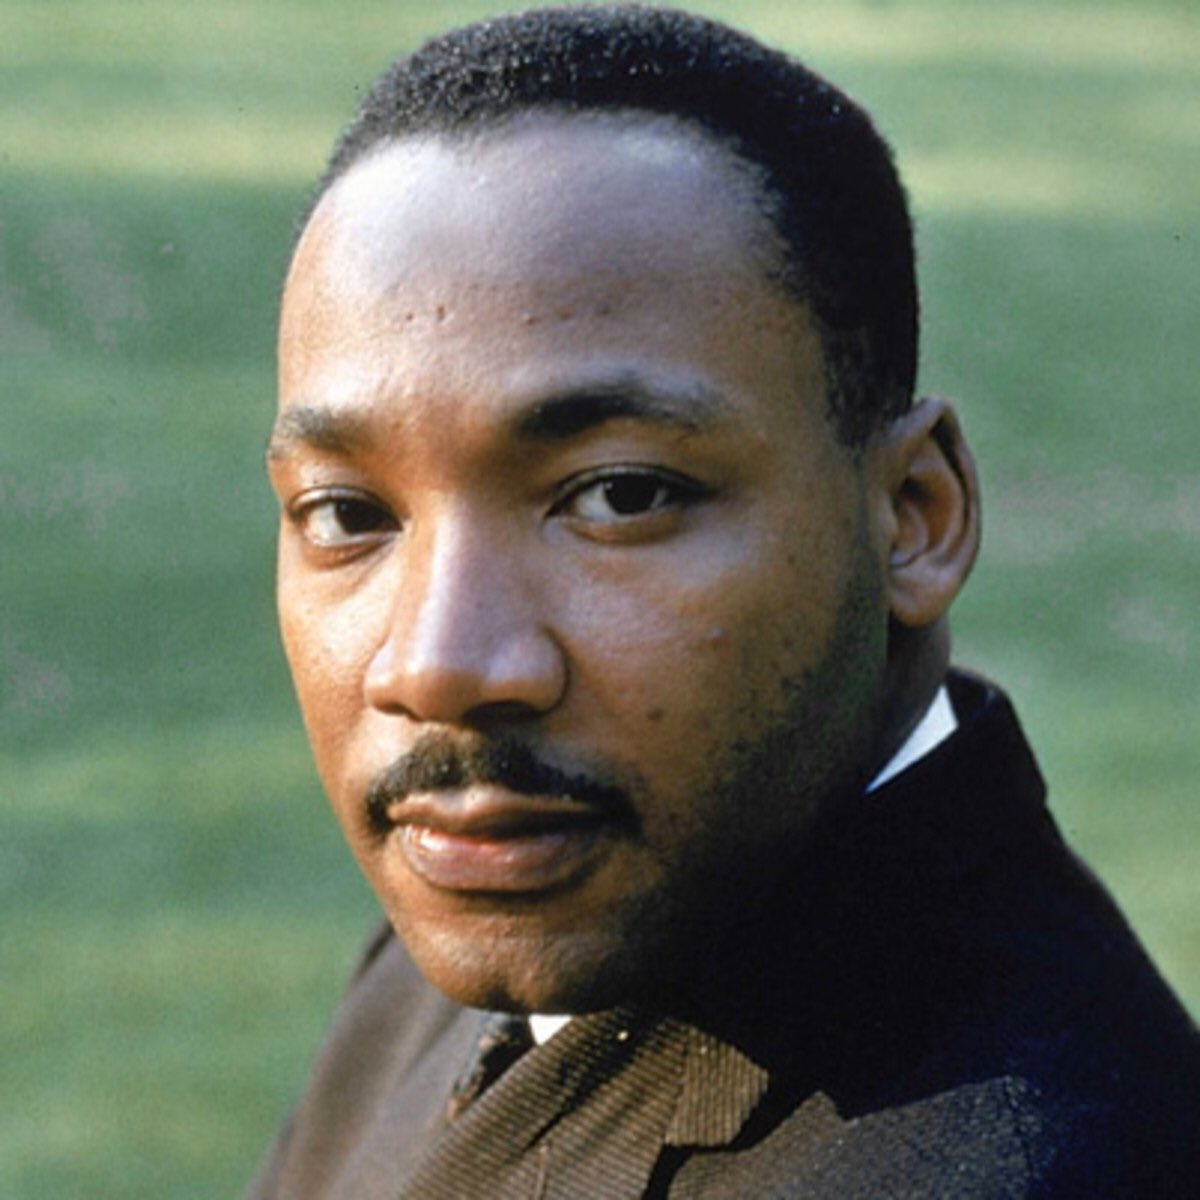 I may be the only one who neve martin luther king